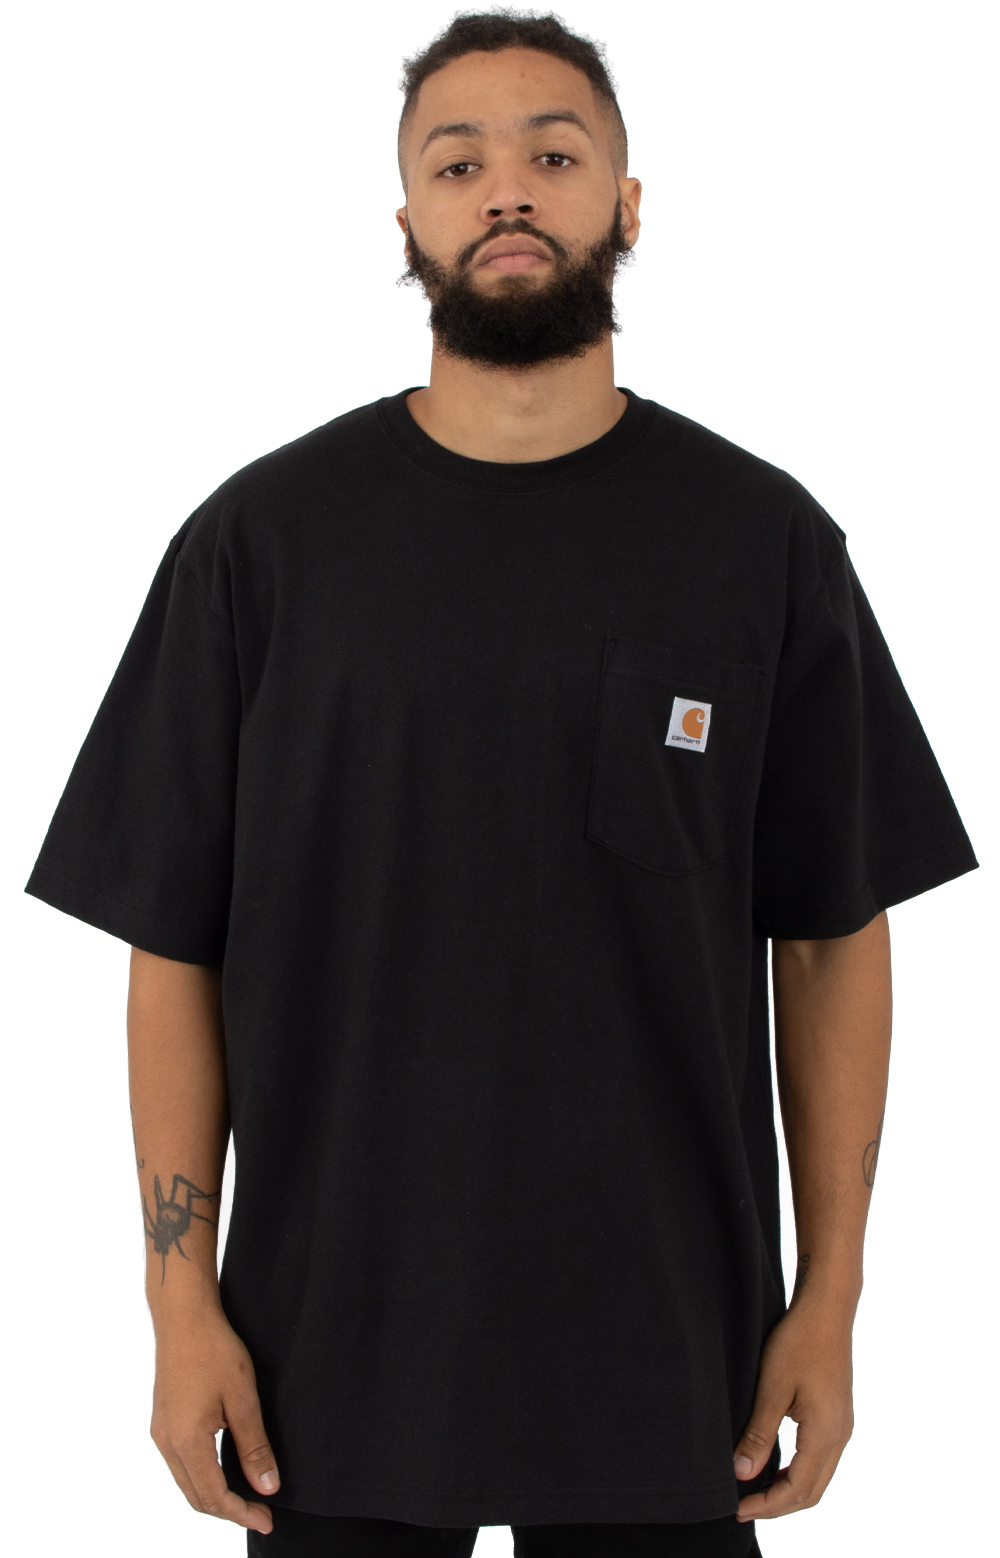 Carhartt, (K87) Workwear Pocket T-Shirt - Black